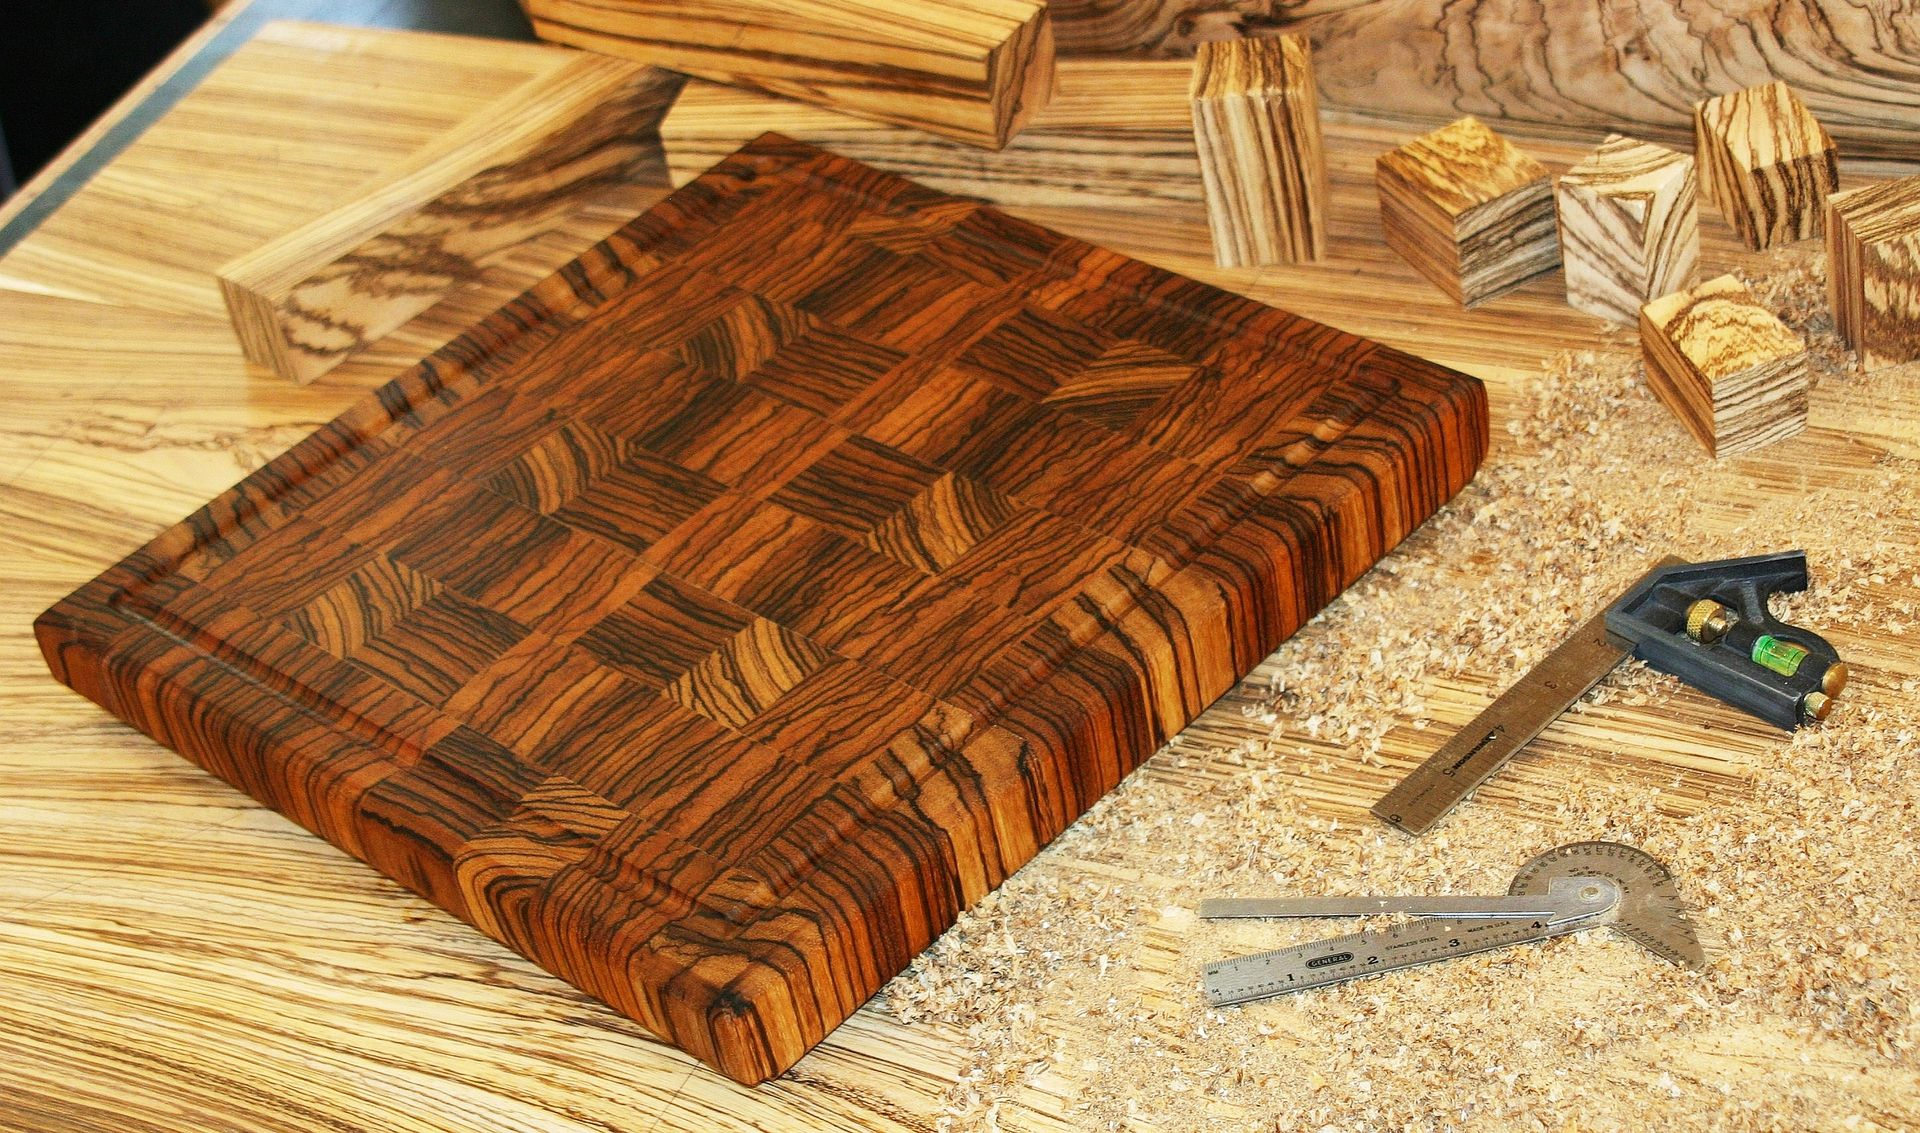 How To Build An End Grain Cutting Board From Scrap Wood